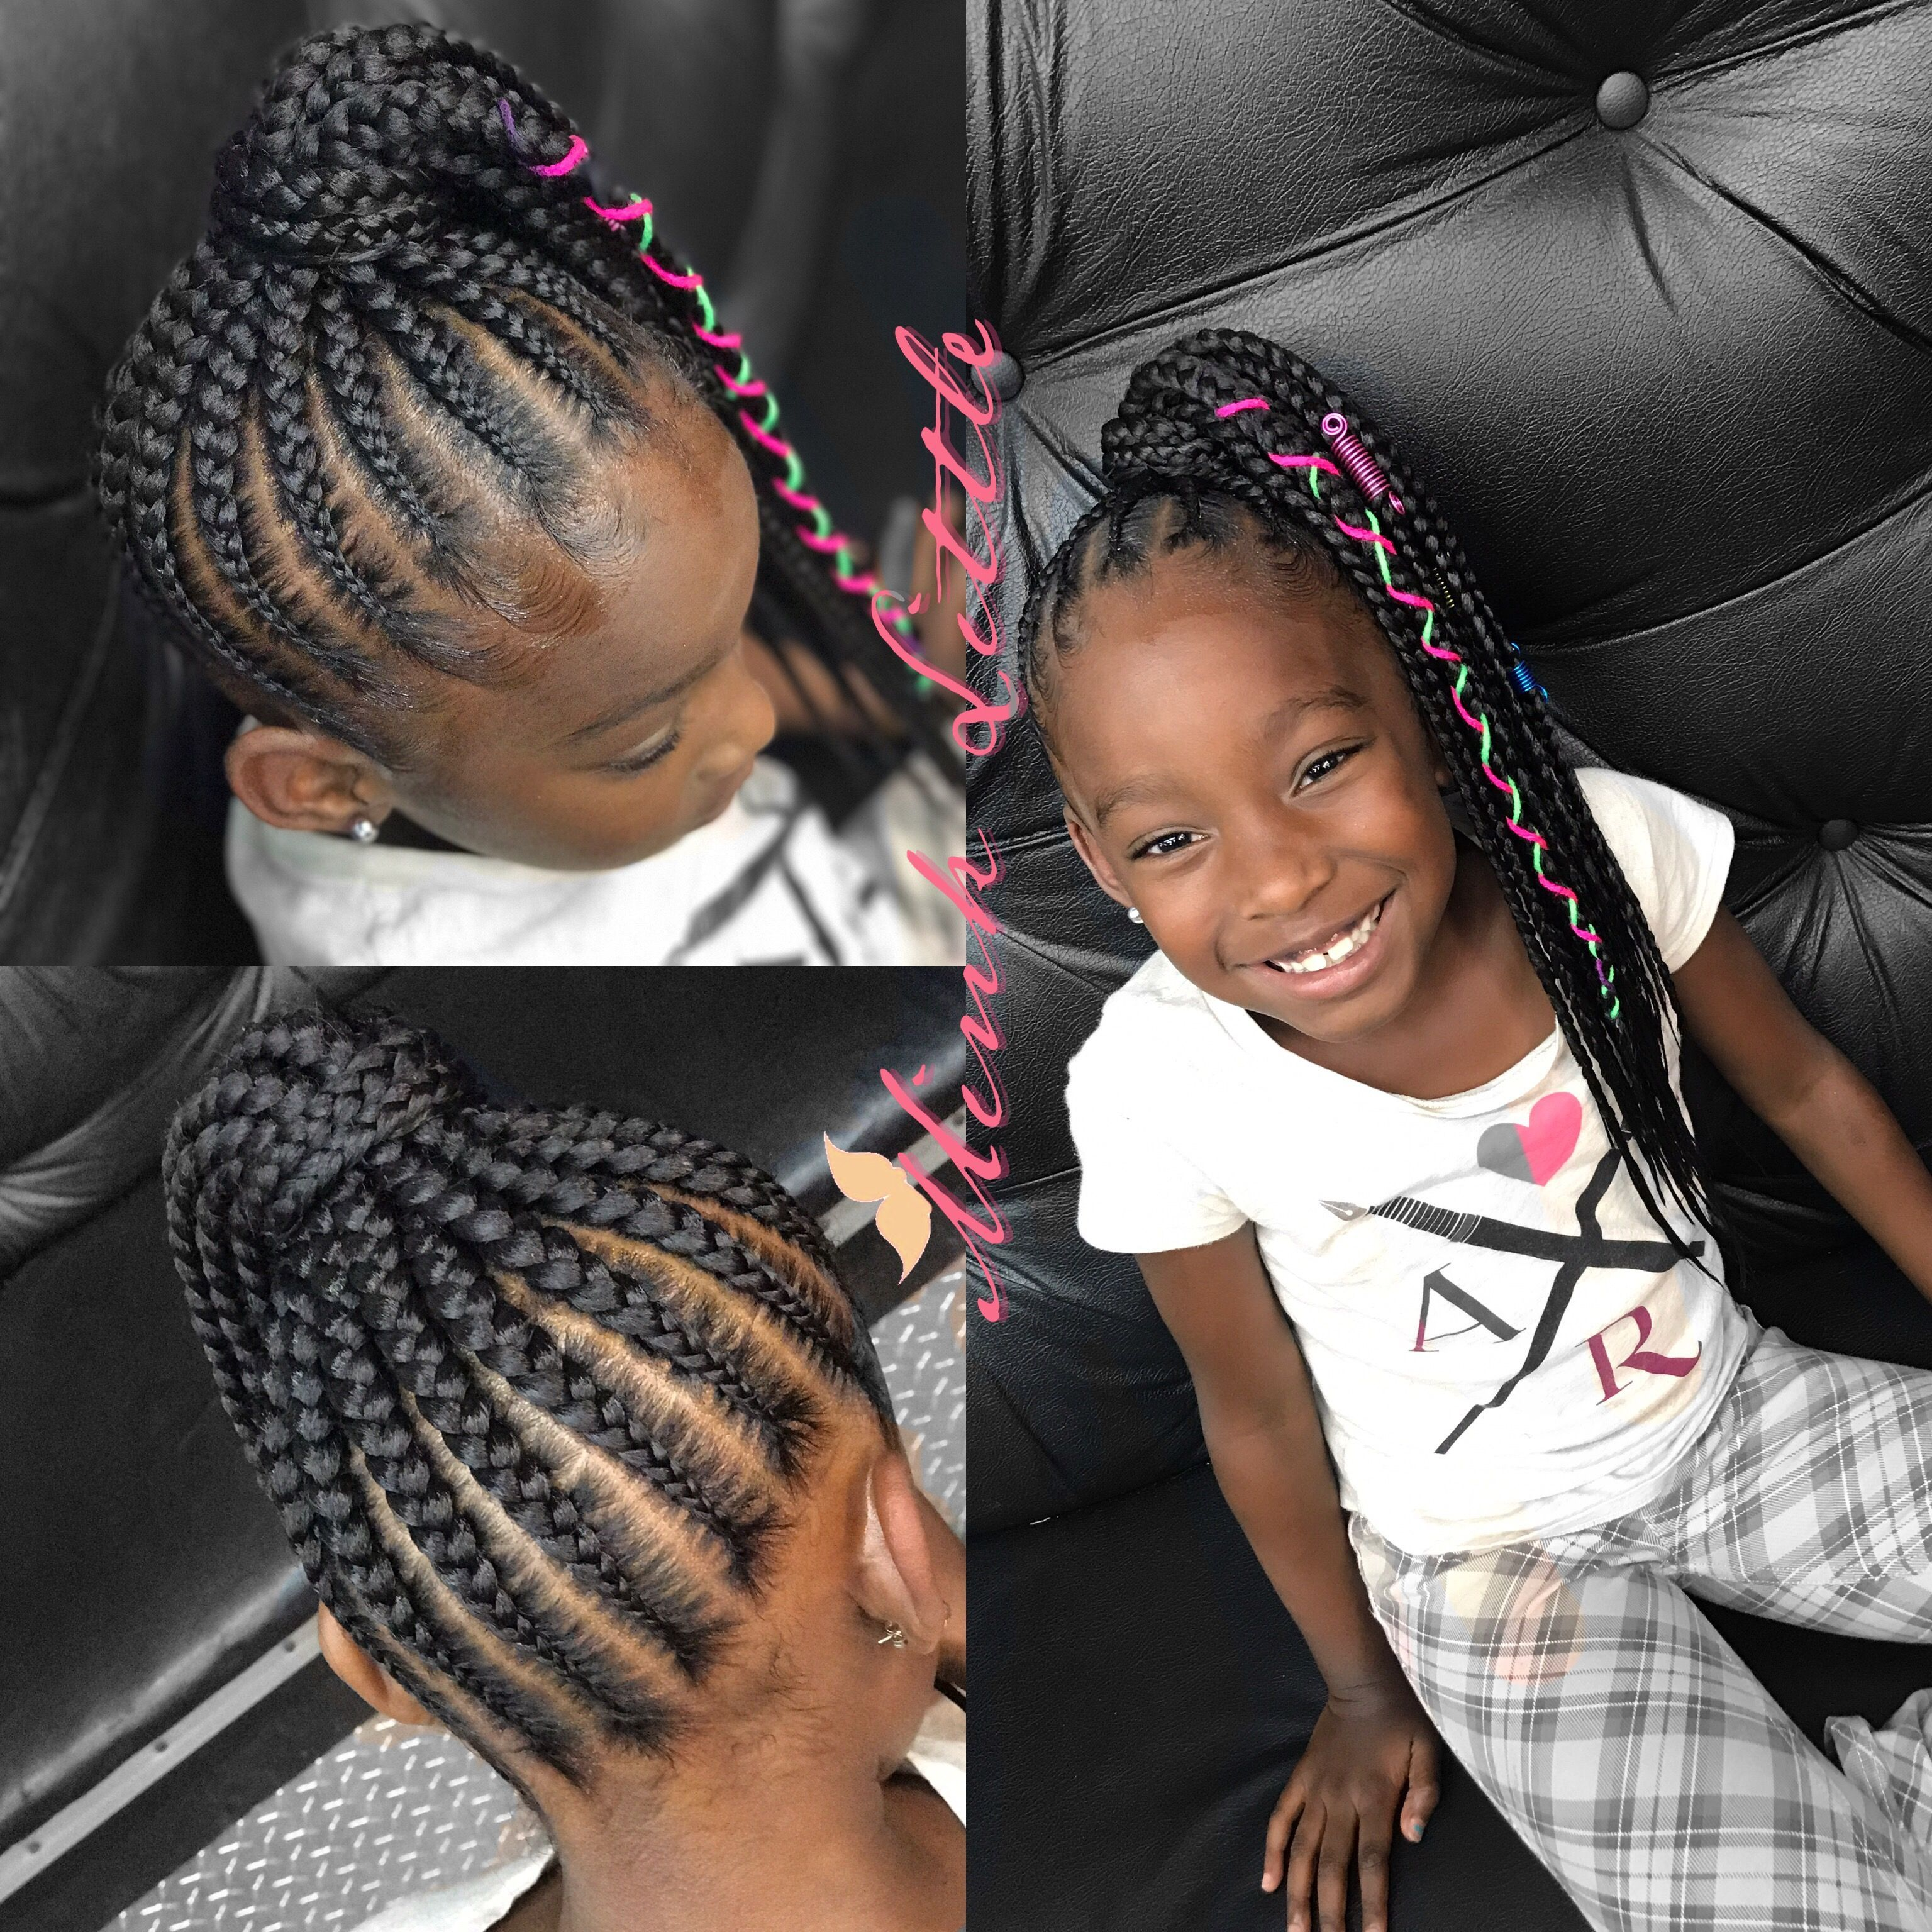 Braids Up In A Ponytail